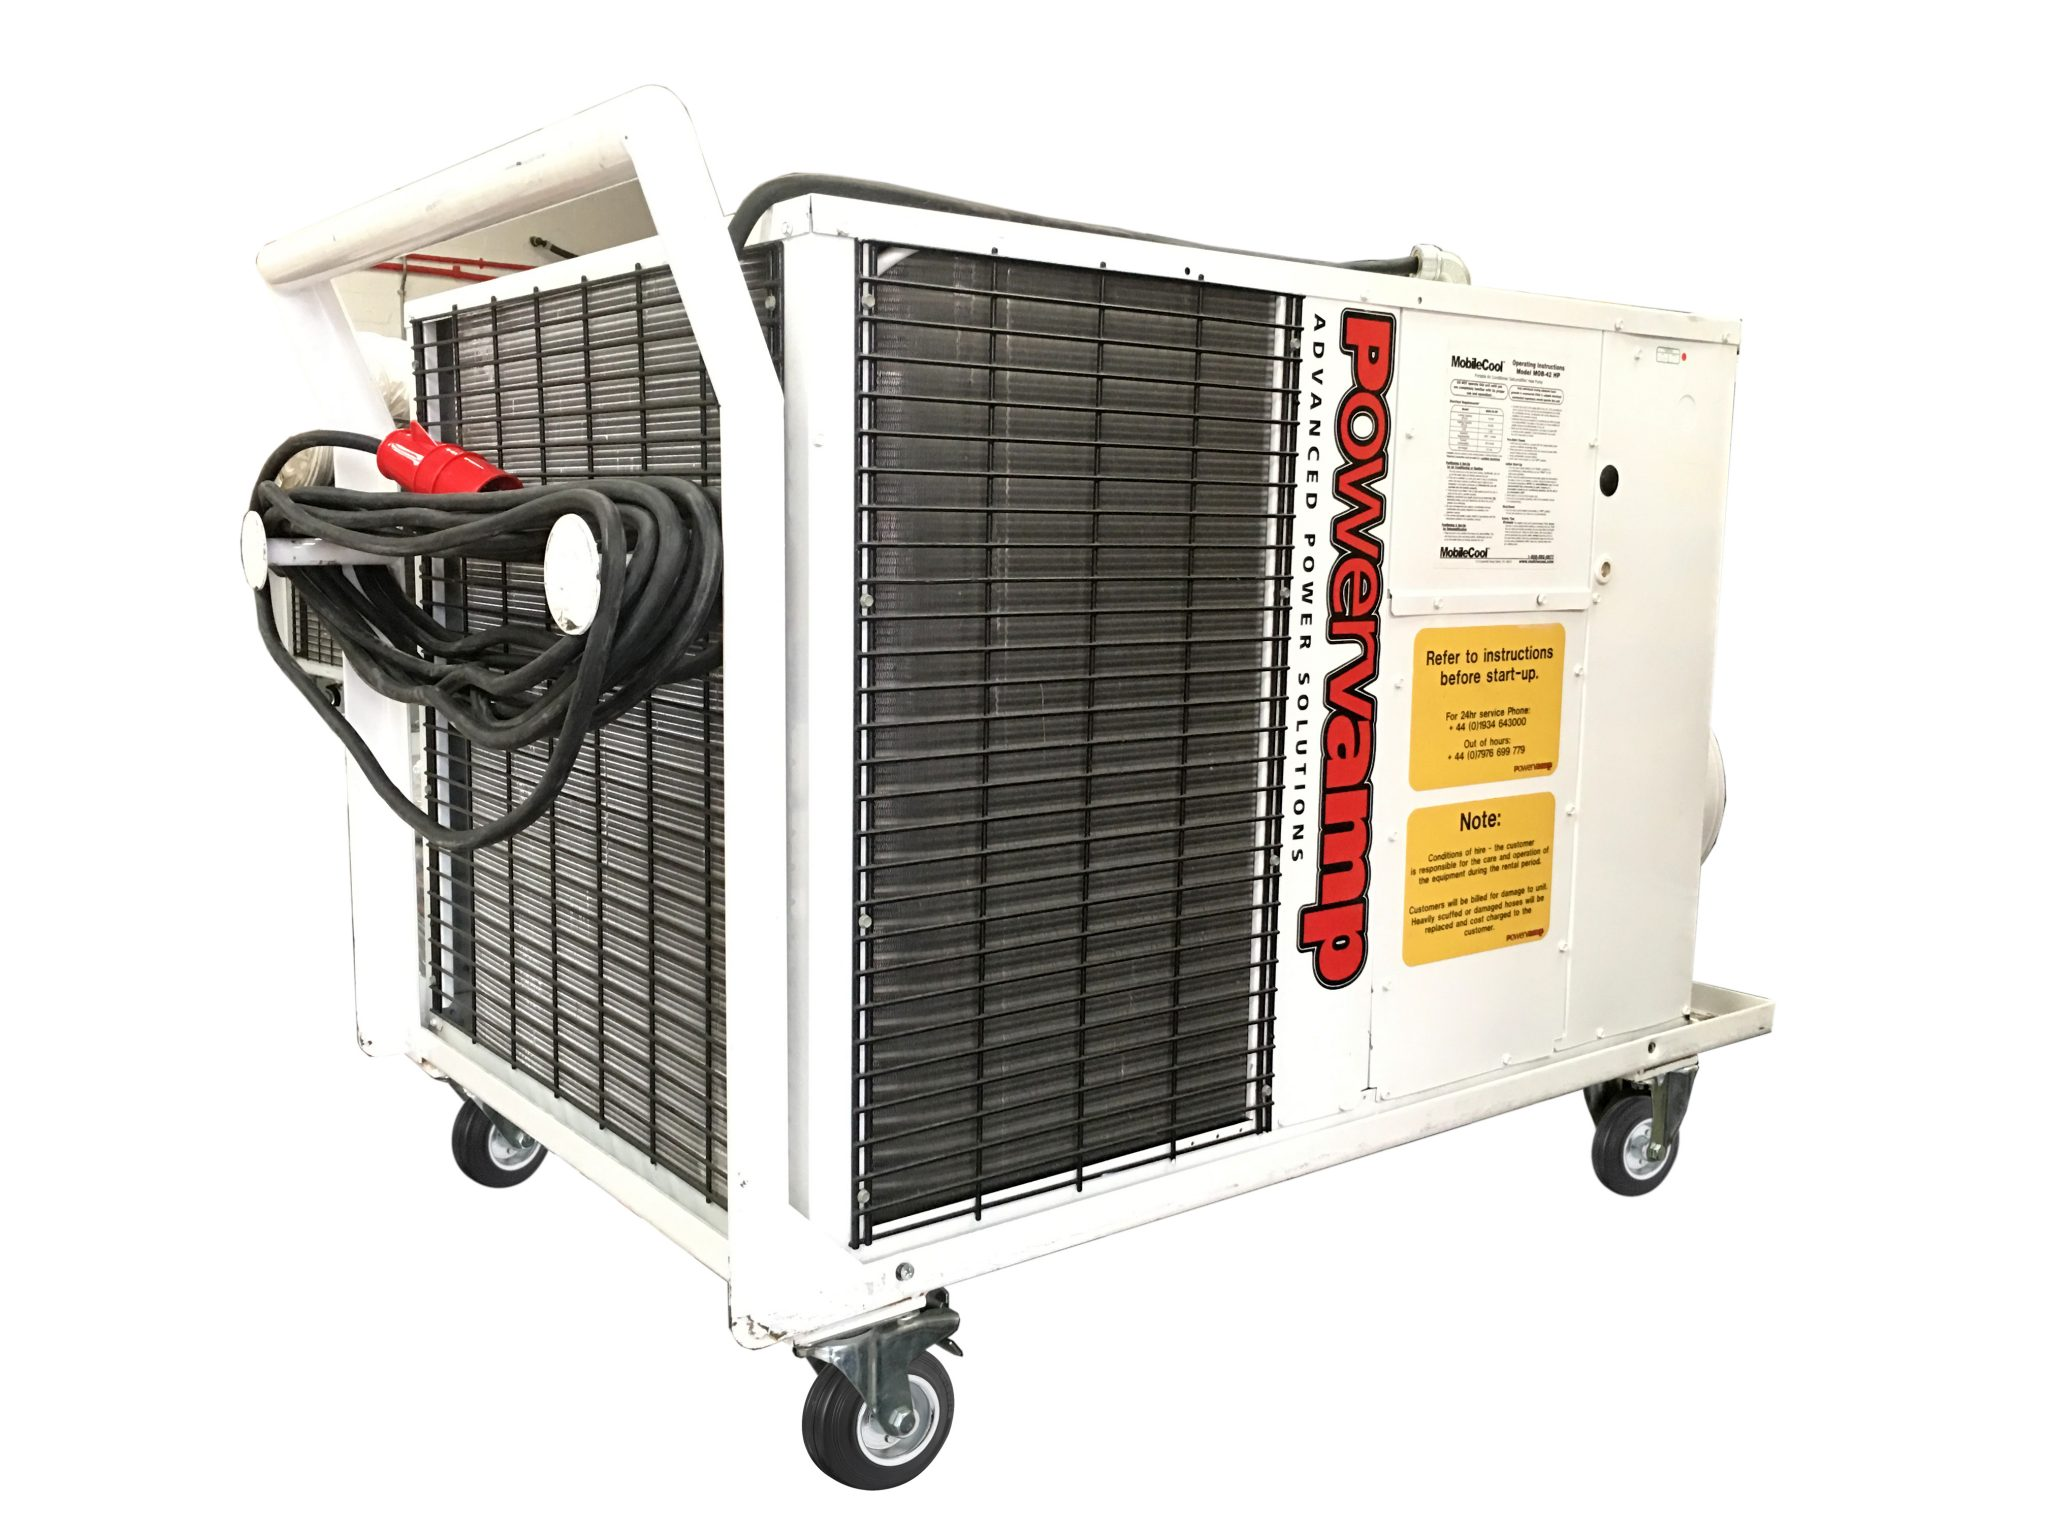 Coolers<br/><small>3 Tonne Portable Air Conditioning Unit</small>